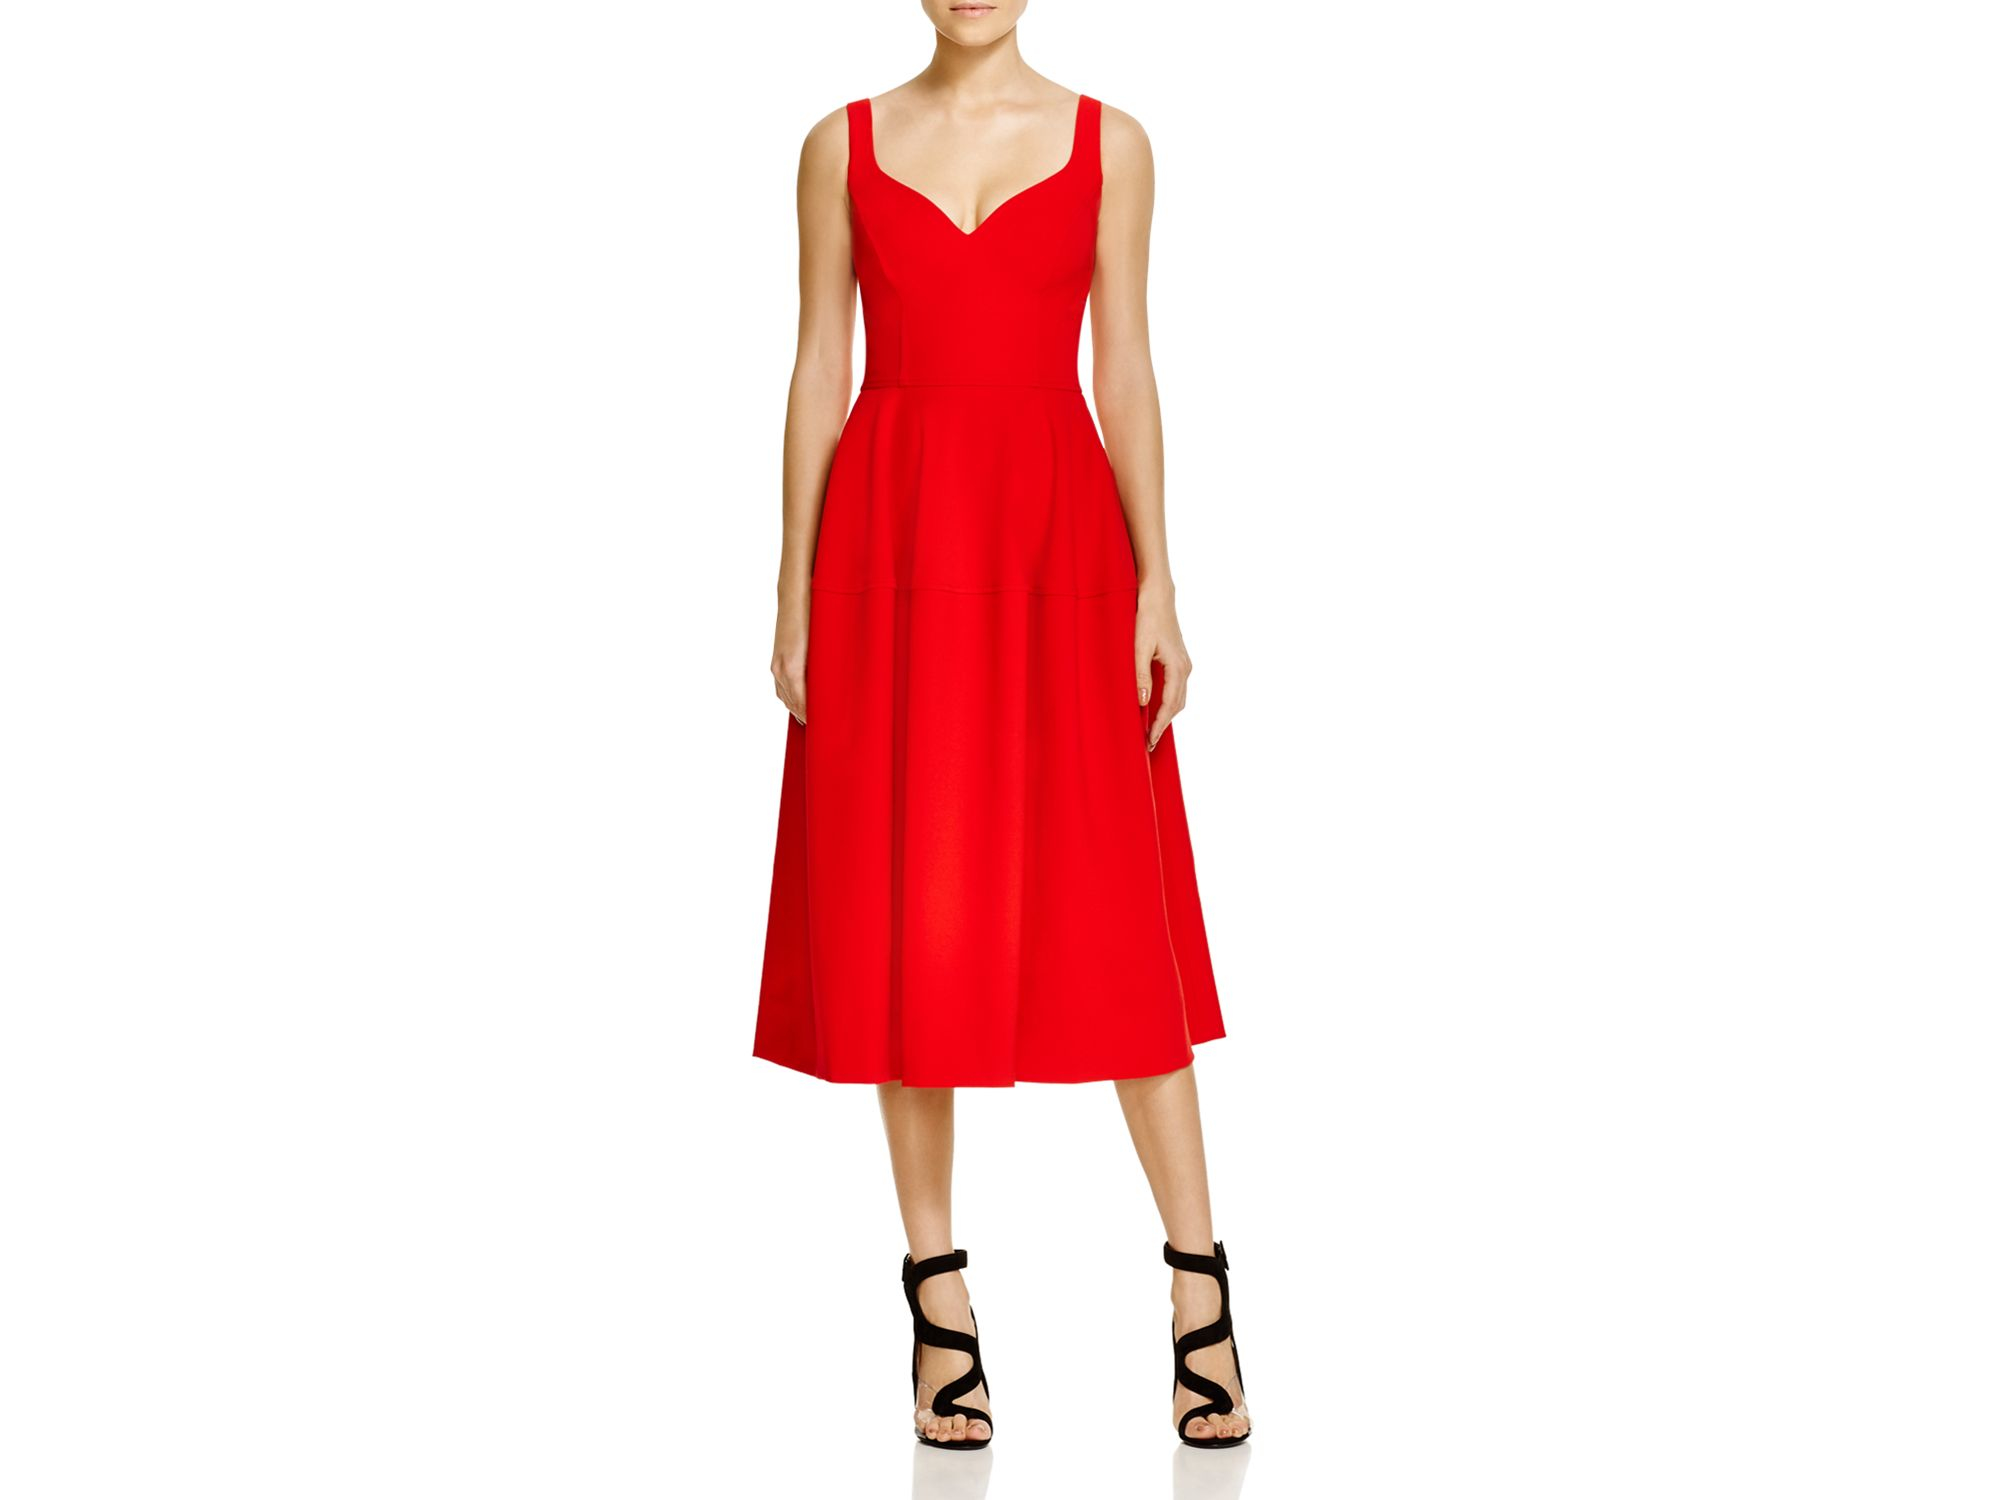 Jill Jill Stuart Sweetheart A Line Cocktail Dress In Red